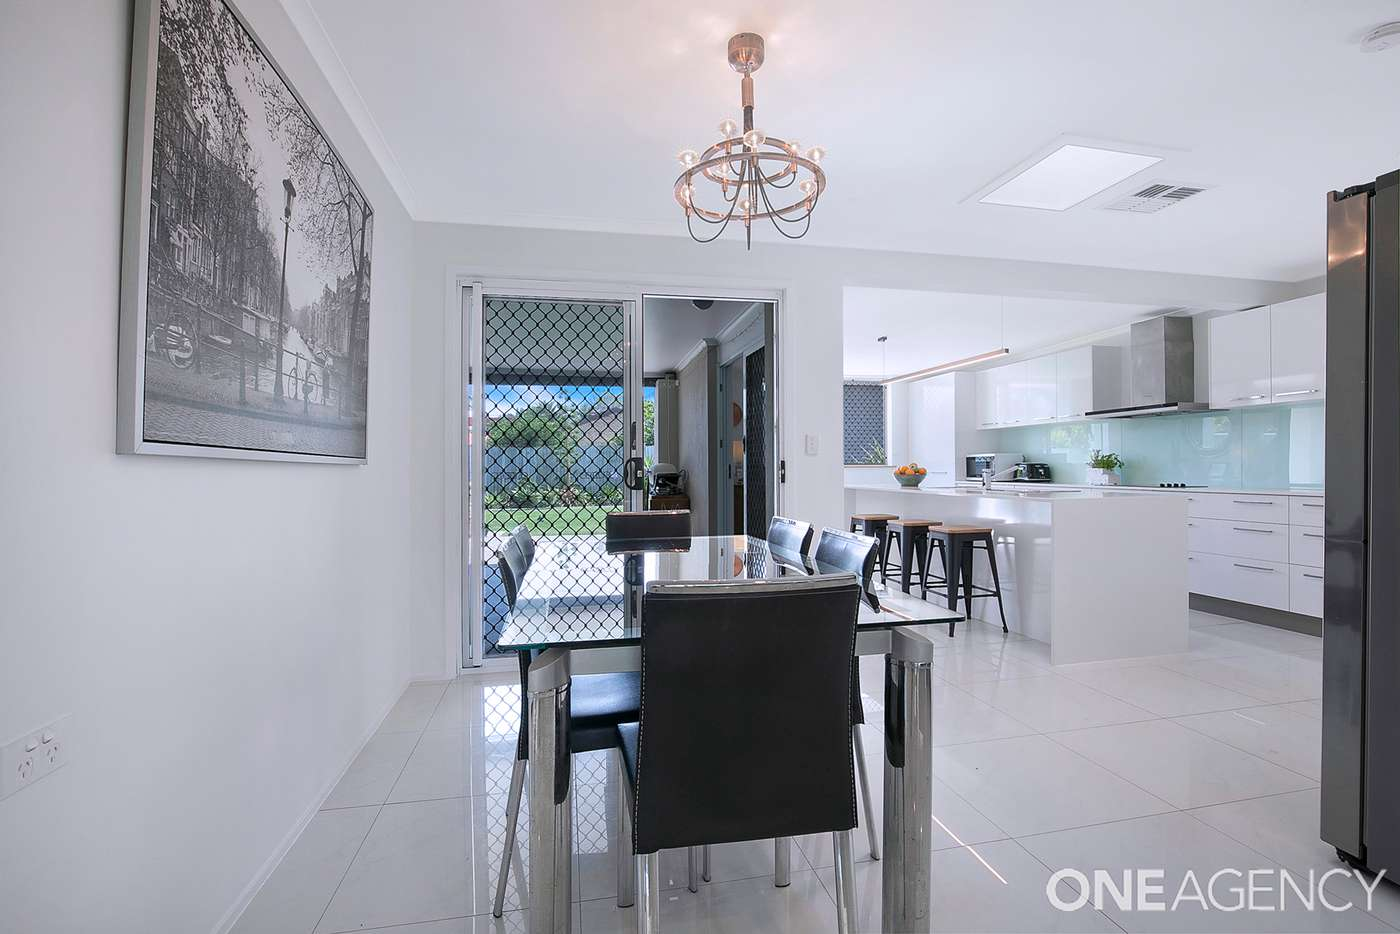 Fifth view of Homely house listing, 16 Beacon Crescent, Newport QLD 4020